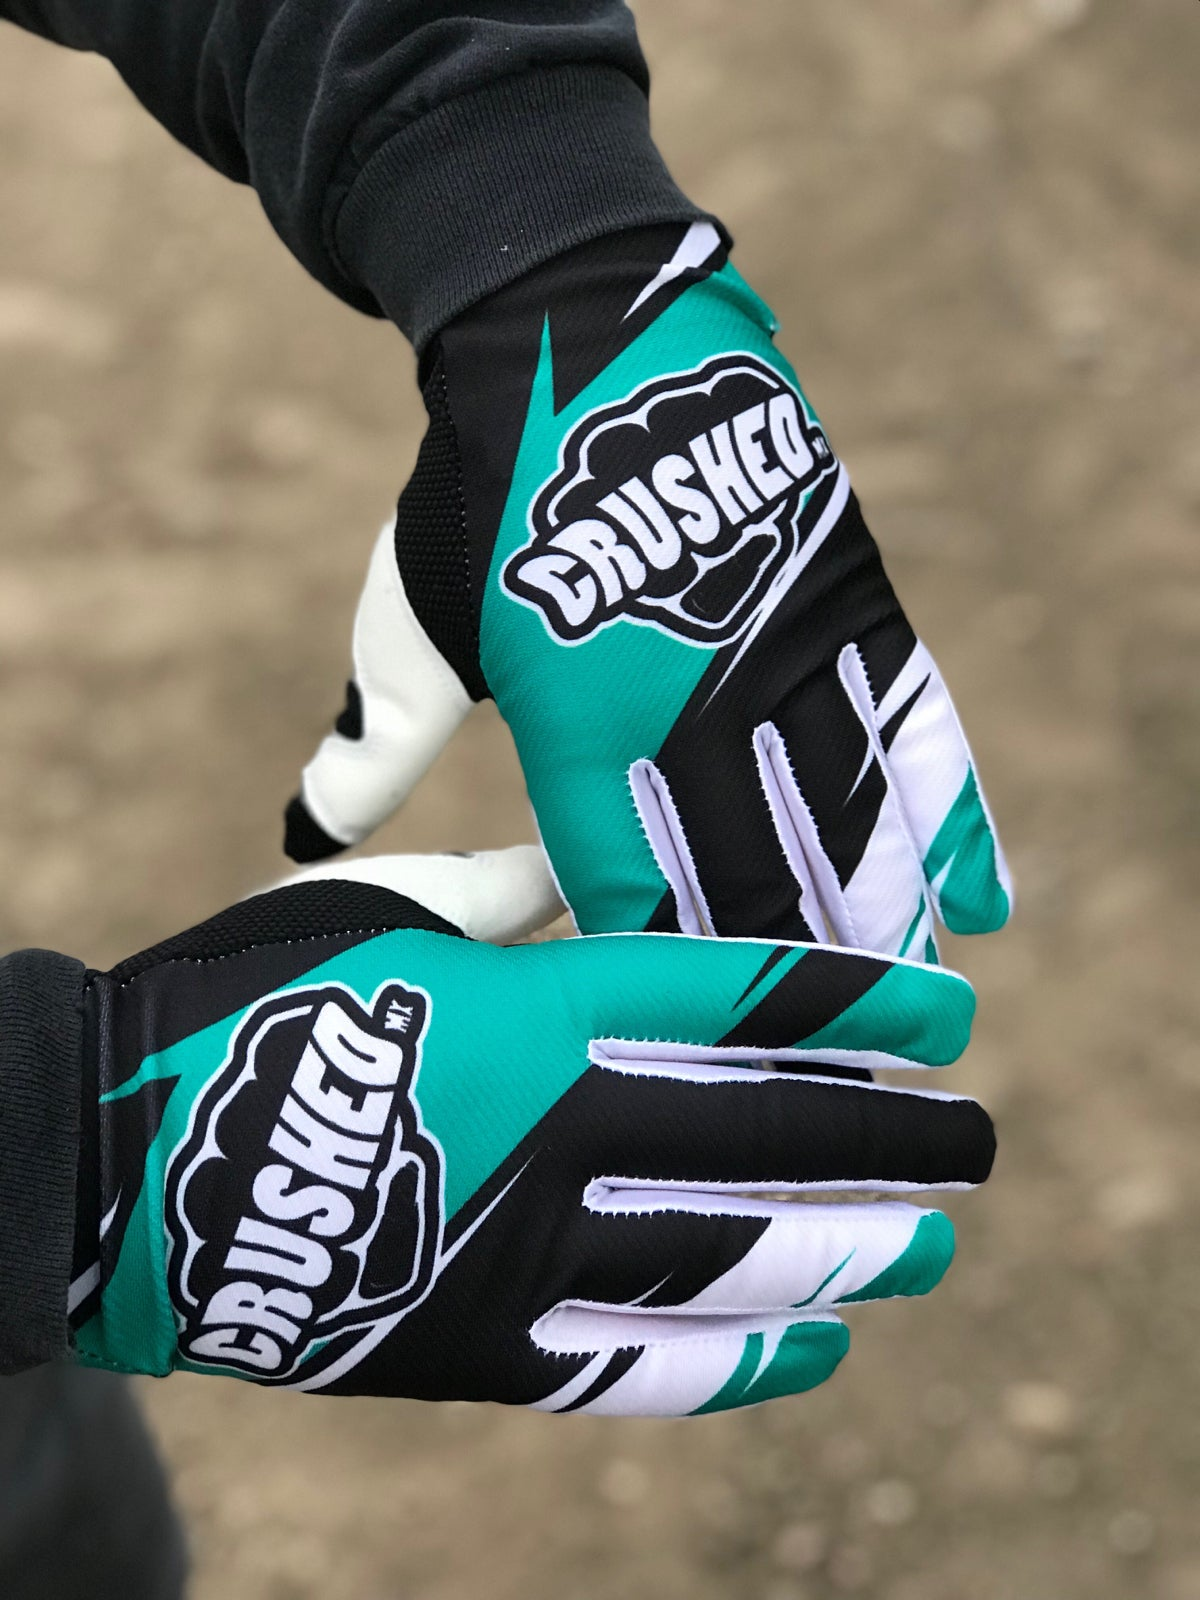 teal black and white crushed mx motocross gloves